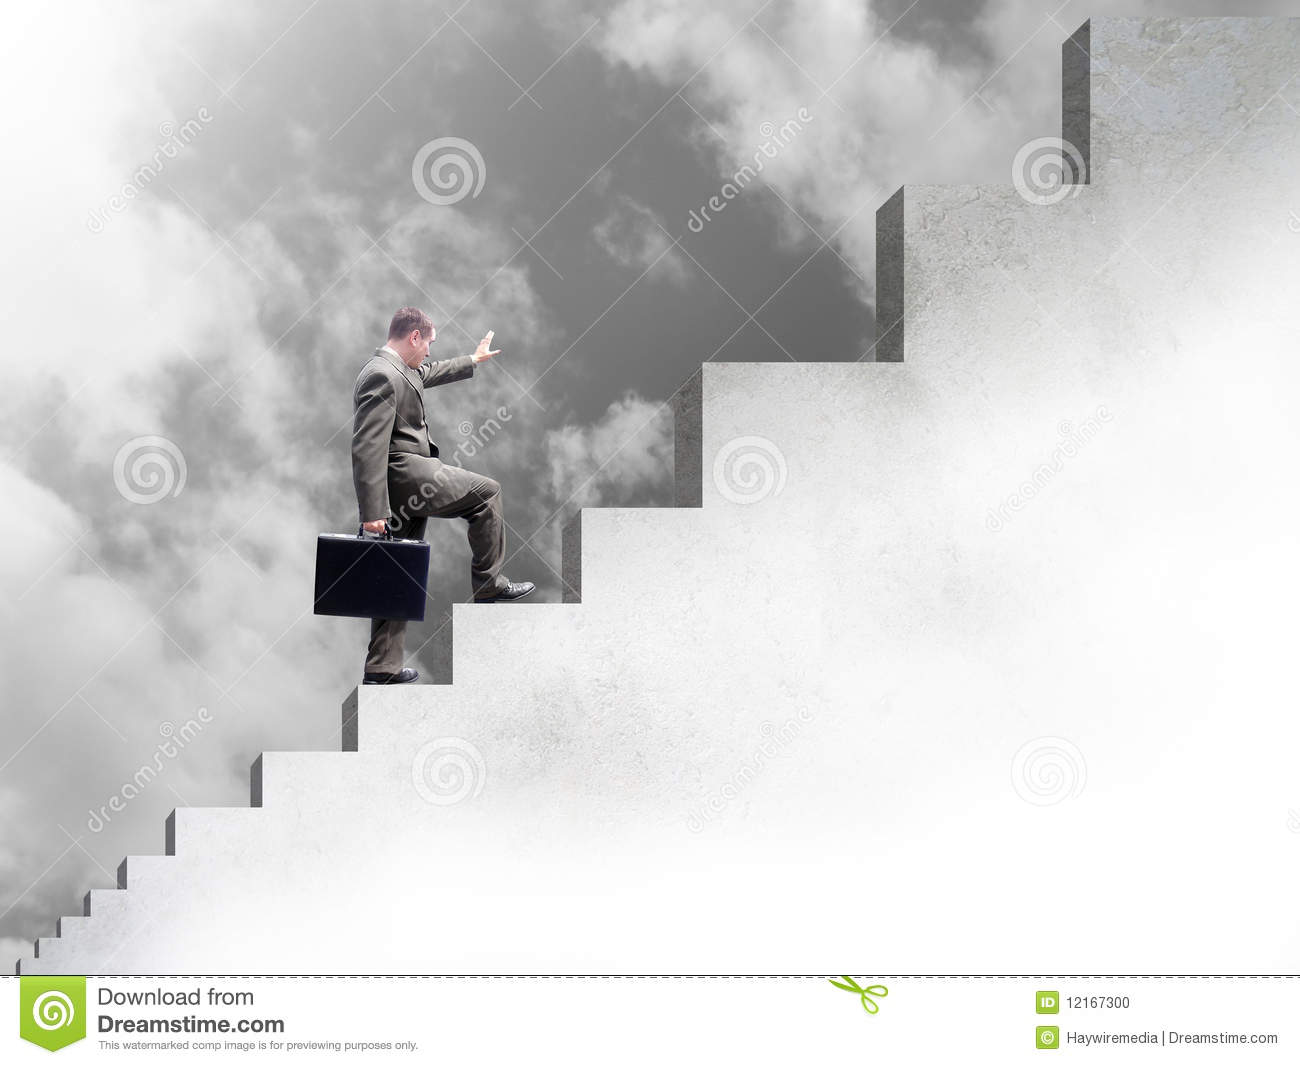 business-man-climbing-up-stairs-to-success-12167300.jpg